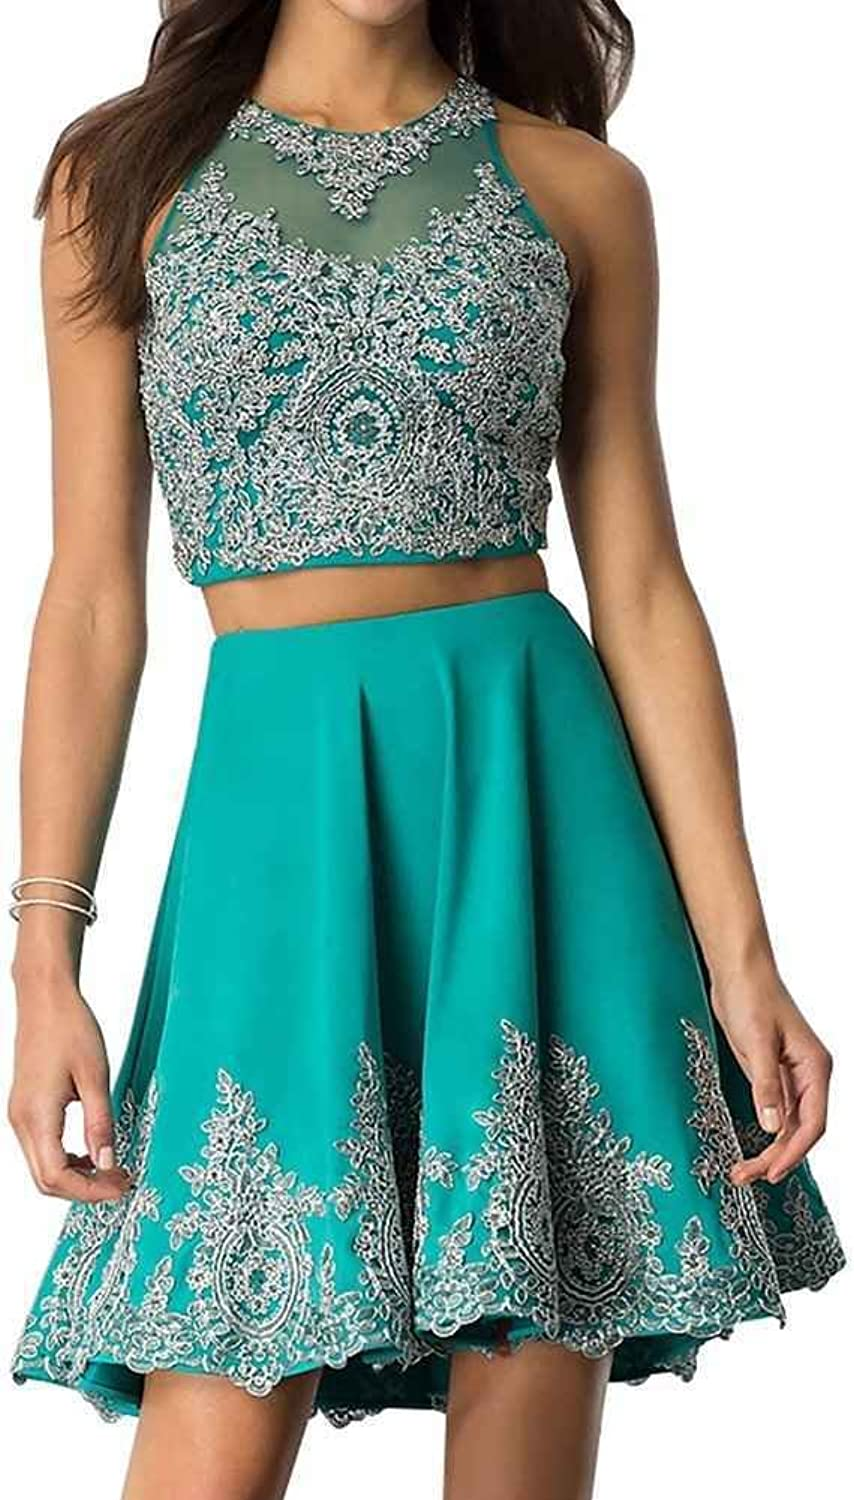 Ruisha Women Two Pieces Homecoming Dress Short ALine Applique High Neck Cocktail Party Gowns RS0197